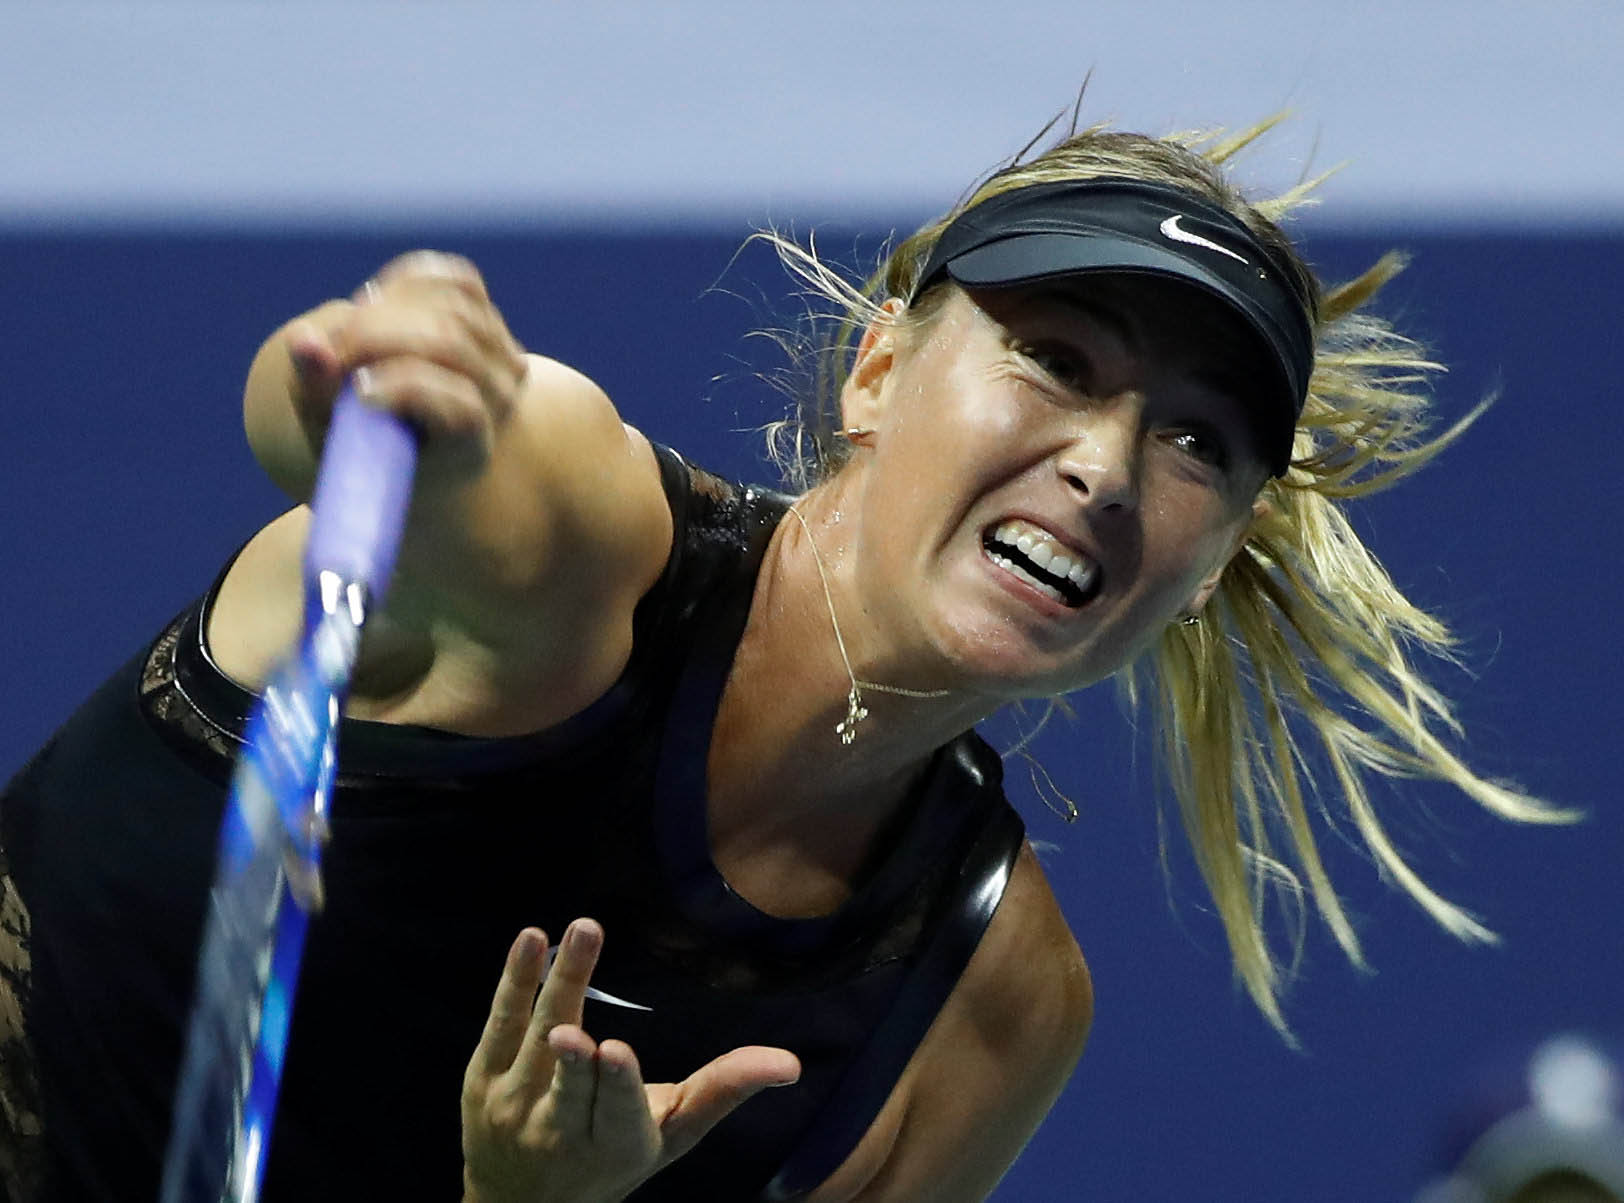 Maria Sharapova of Russia in action against Simona Halep of Romania during their first round match in the US Open, in New York, US, on August 28, 2017. Photo: Reuters